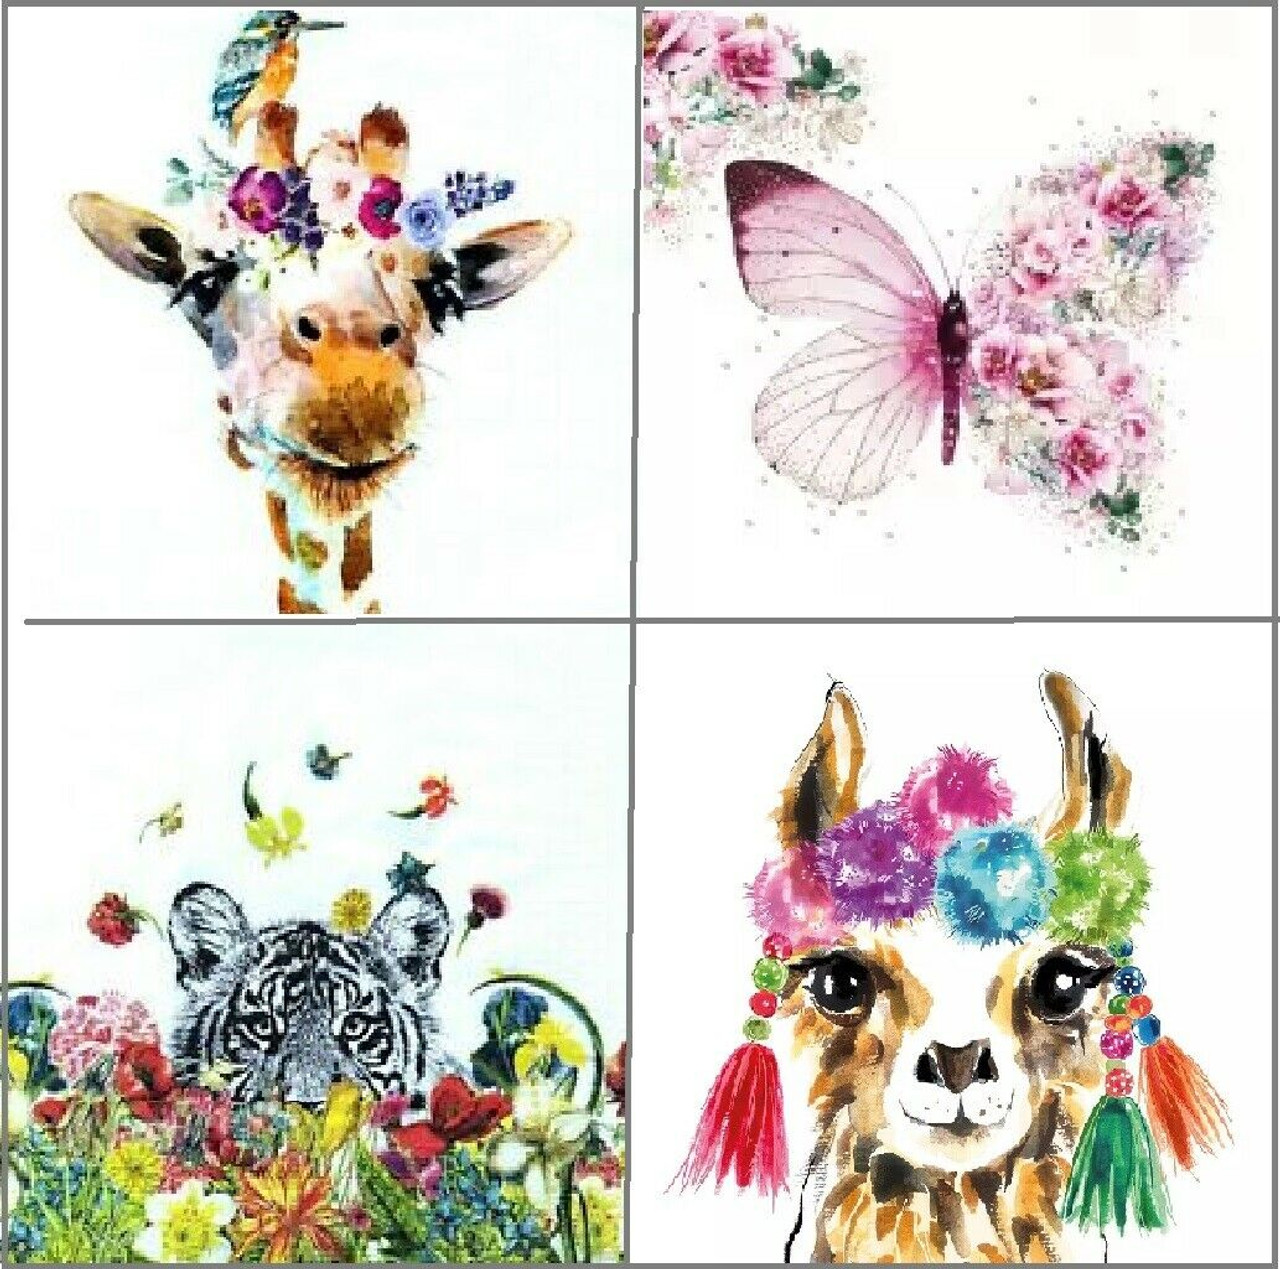 4 Different Vintage Table Paper Napkins For Party Lunch Decoupage Funny Animals Kayartgallery Decoupage